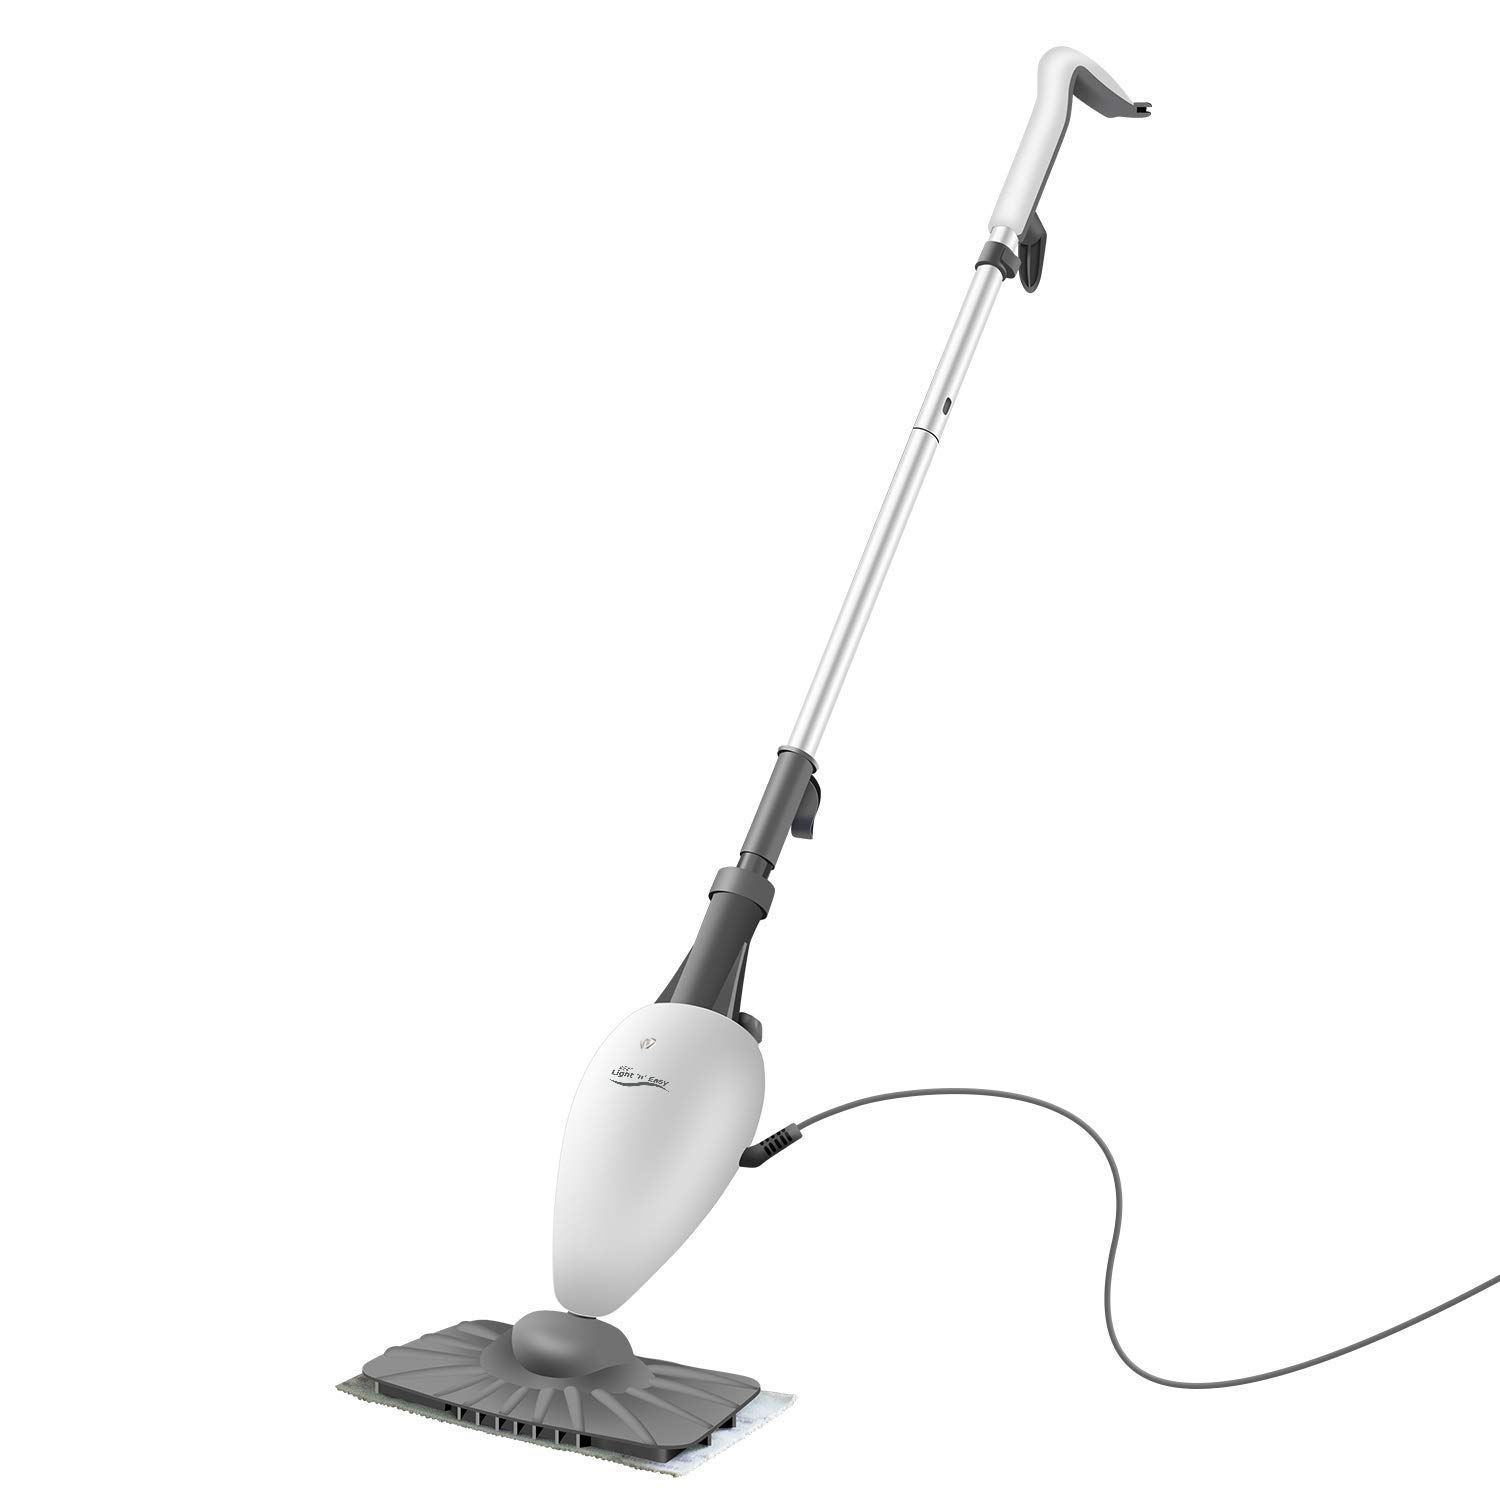 Best Steam Cleaner for Tile 1